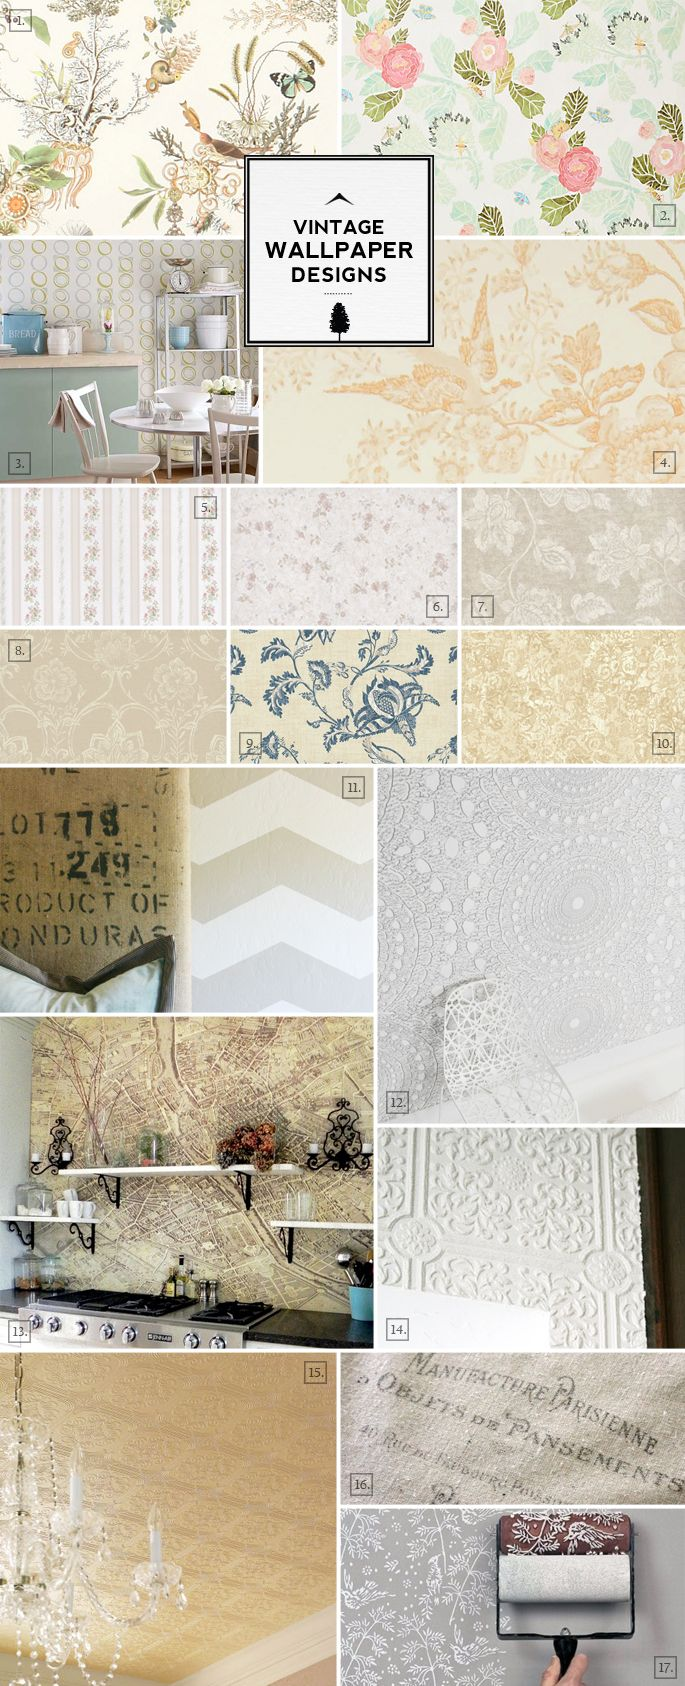 Vintage Wallpaper Patterns, Styles and Design Ideas